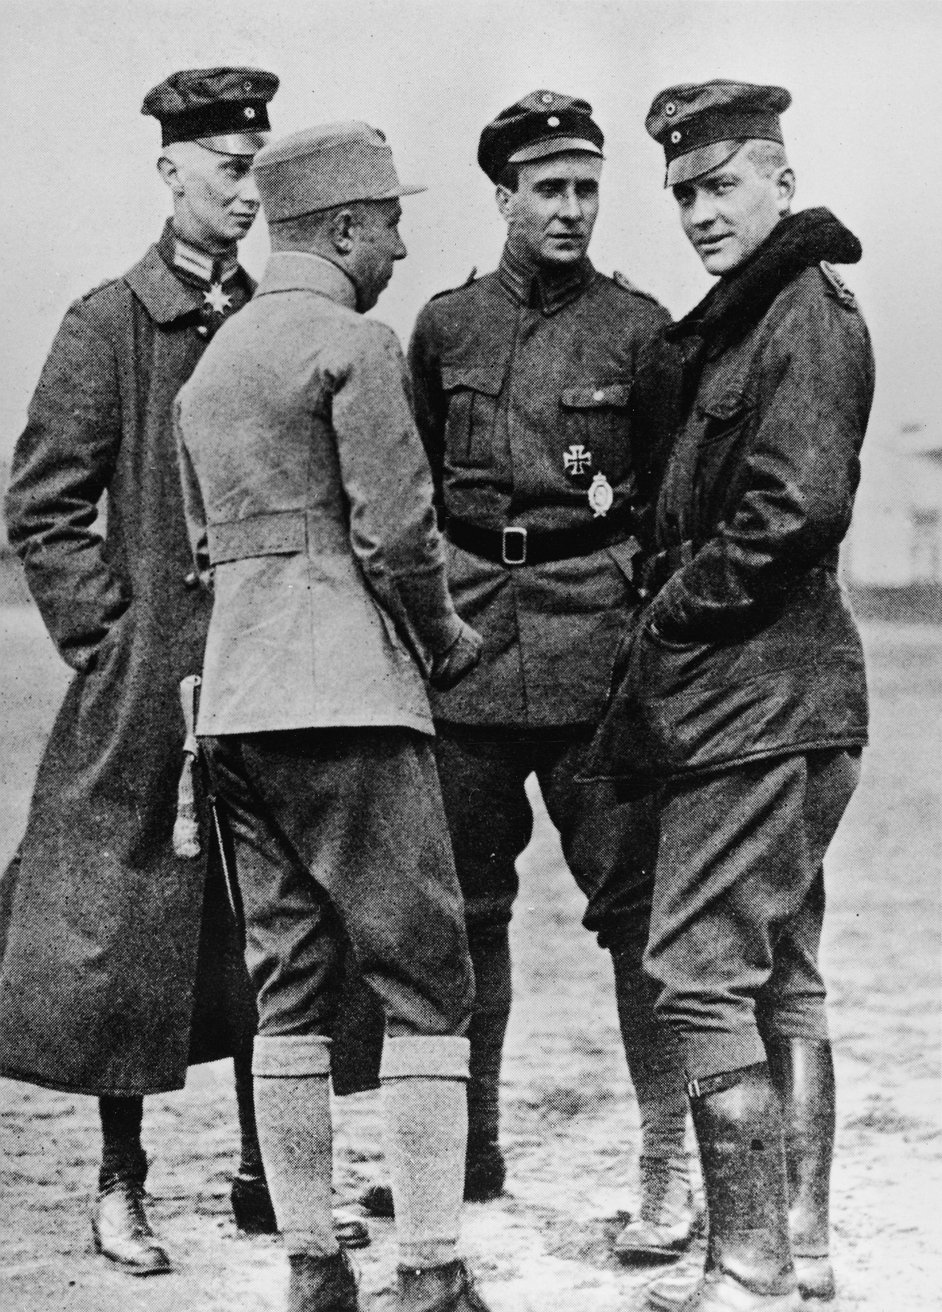 Baron Manfred von Richthofen (1892 - 1918), right, talks to other German officers, 191Os. Von Richthofen, known as the Red Baron, is considered the most successful fighter pilot of all time, racking up 80 air combat battles in less than two years